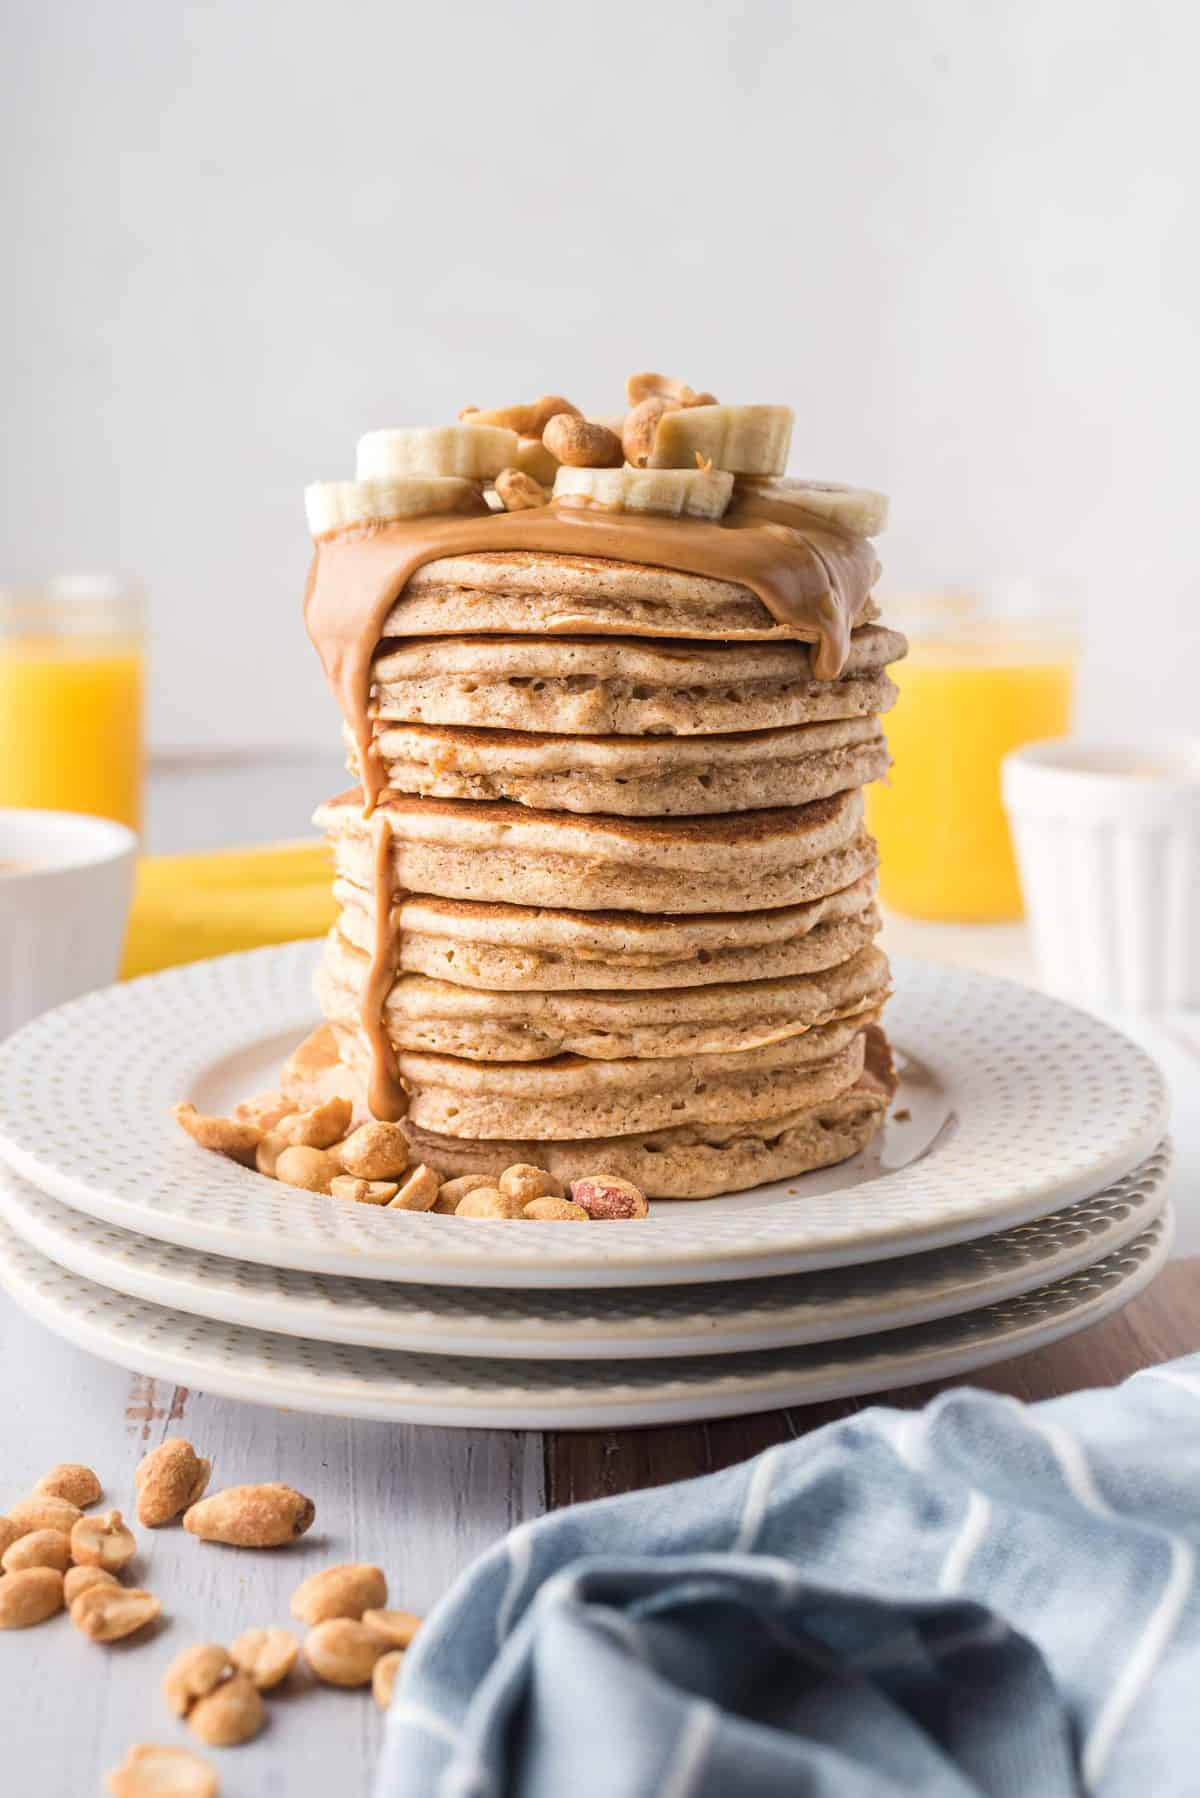 Tall stack of pancakes dripping with peanut butter and topped with banana slices.